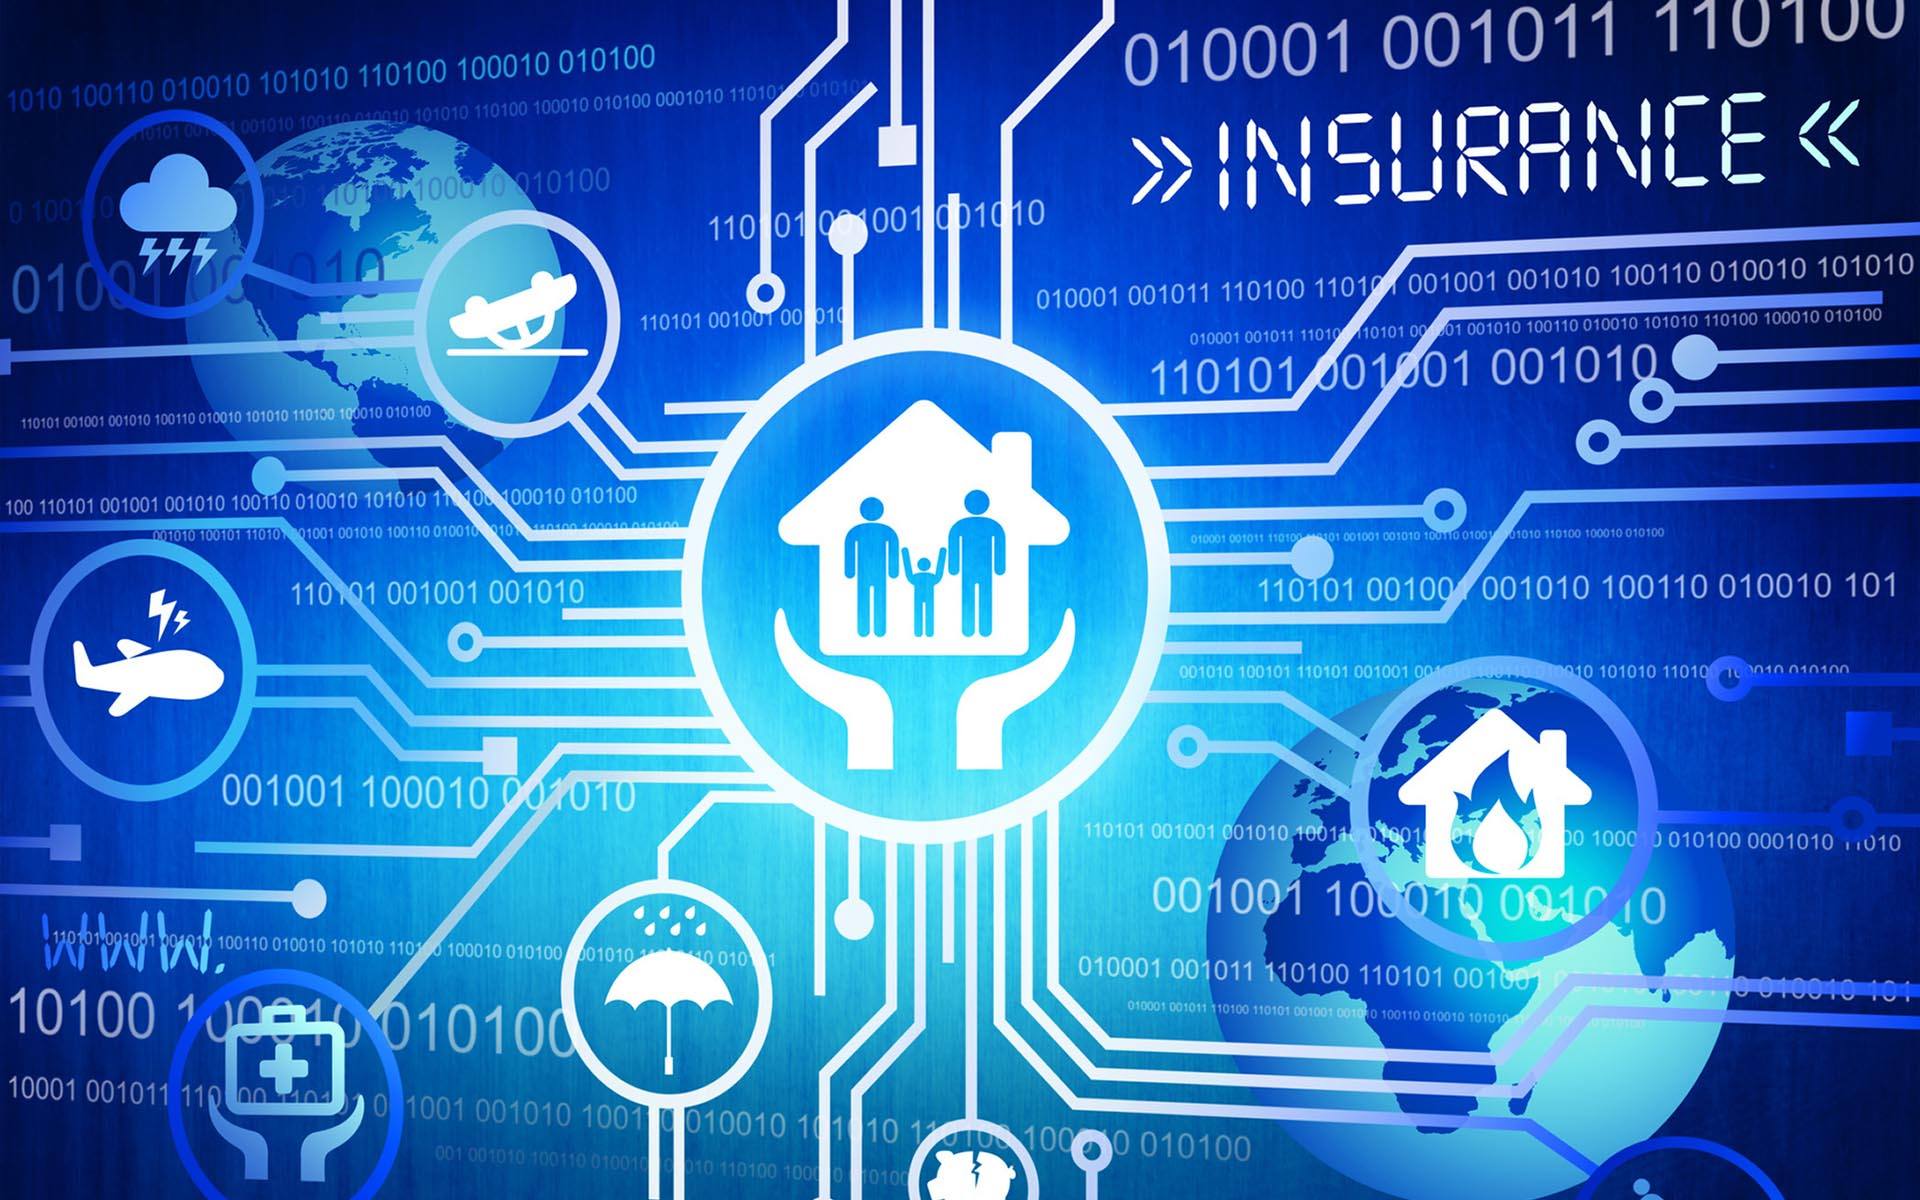 Digital Insurance Company Aigang Launches Blockchain Demo Apps for IoT Devices